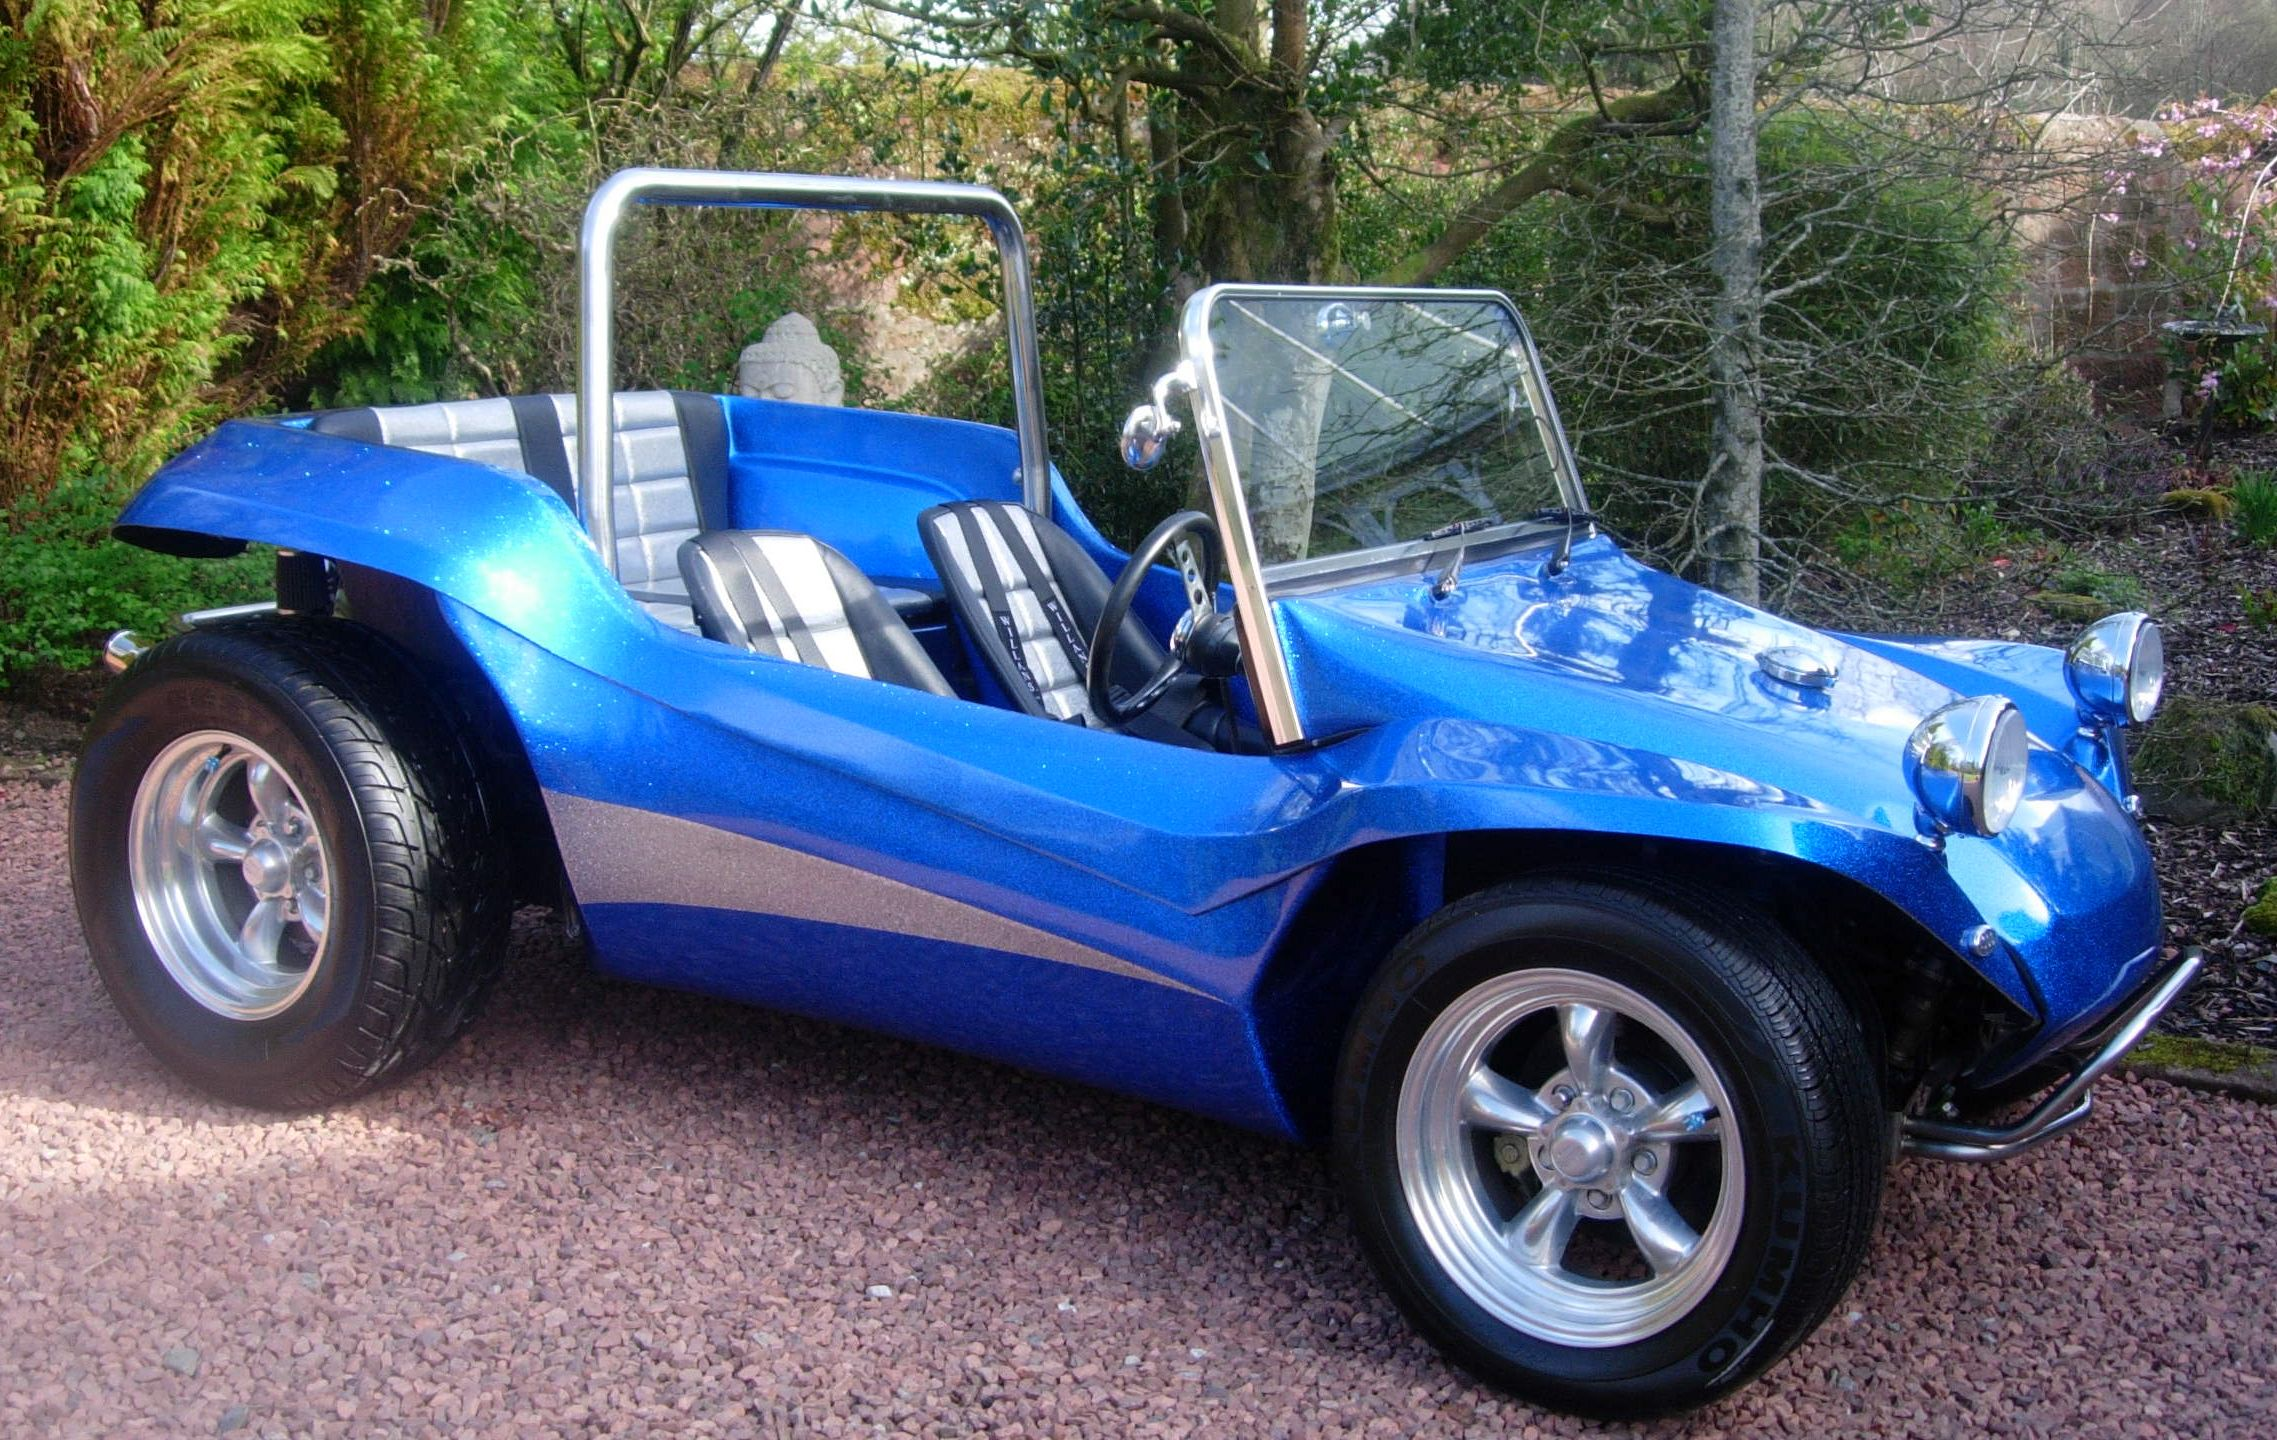 1969 volkswagen dune buggy dune buggy cherry red for sale in 1969 volkswagen dune buggy dune buggy cherry red for sale in yuma az sand rails pinterest dune volkswagen and beach buggy sciox Choice Image